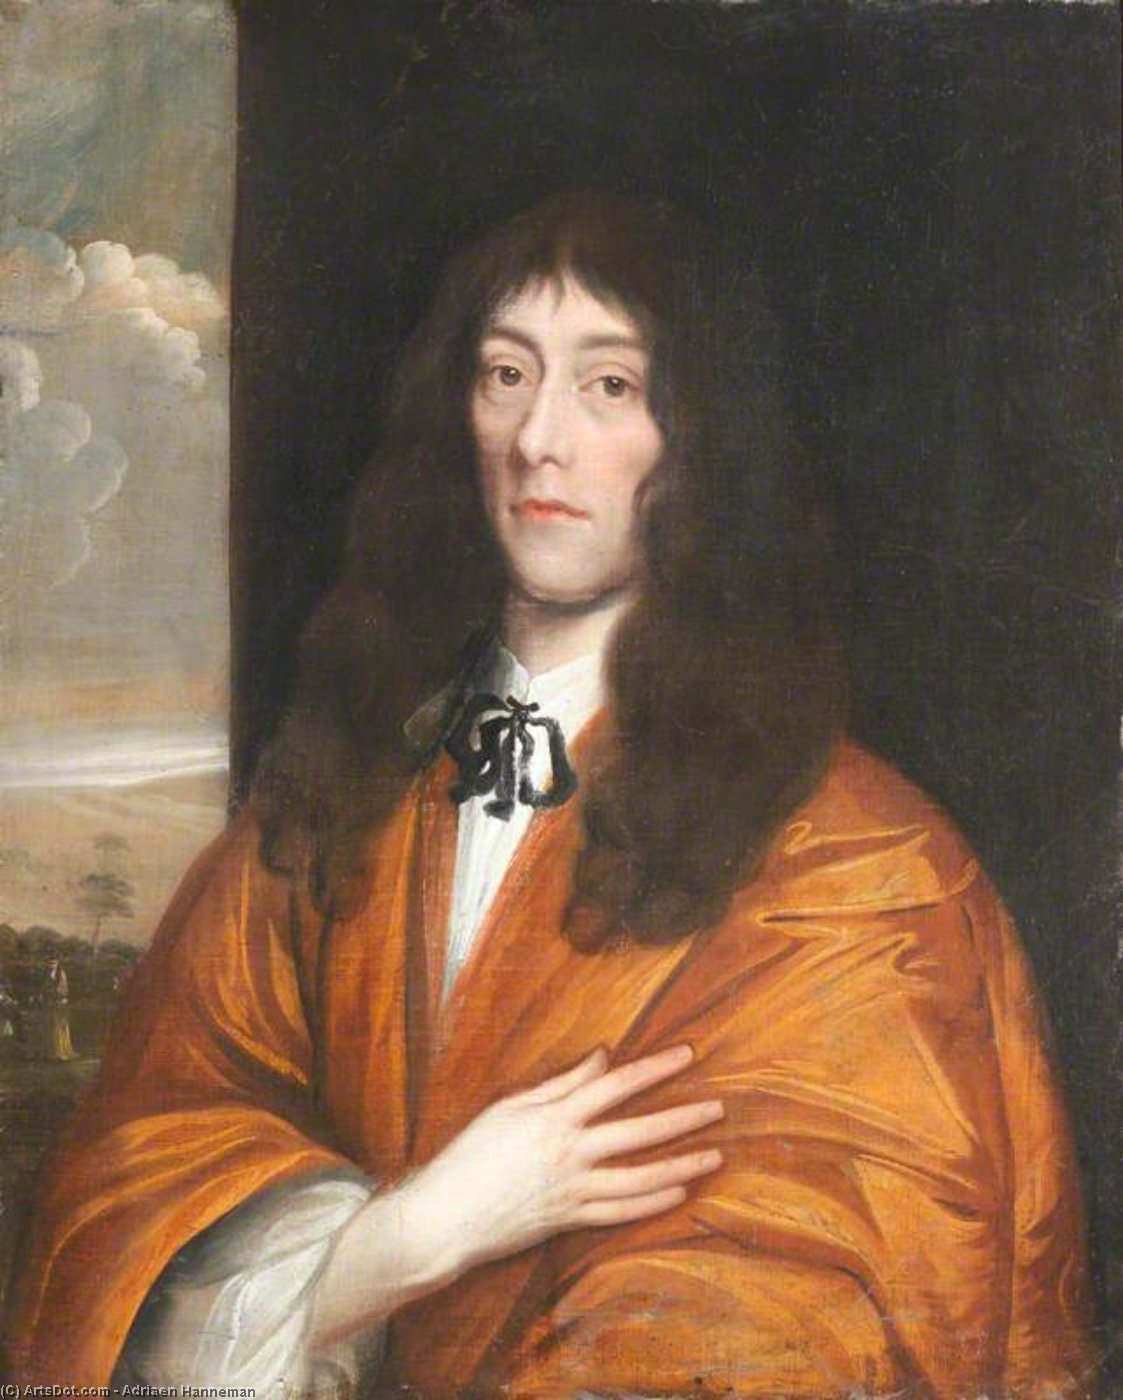 Portrait Of An Unknown Poet In An Orange Cloak With Hand On Heart by Adriaen Hanneman (1603-1671, Netherlands)